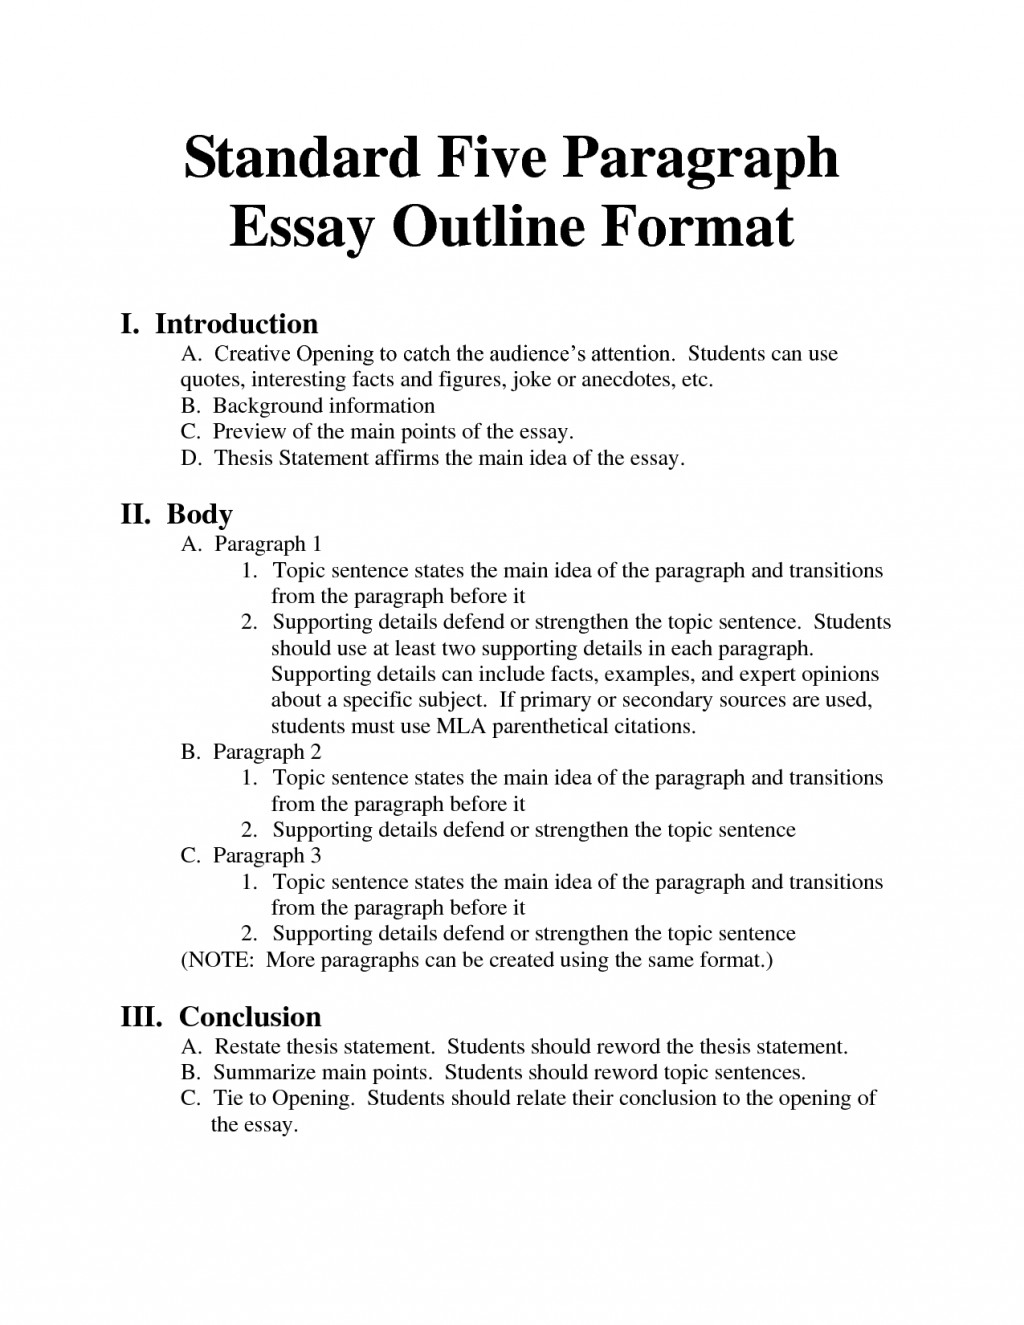 022 Easy Research Paper Topics Fantastic For High School Students Reddit To Write About Large